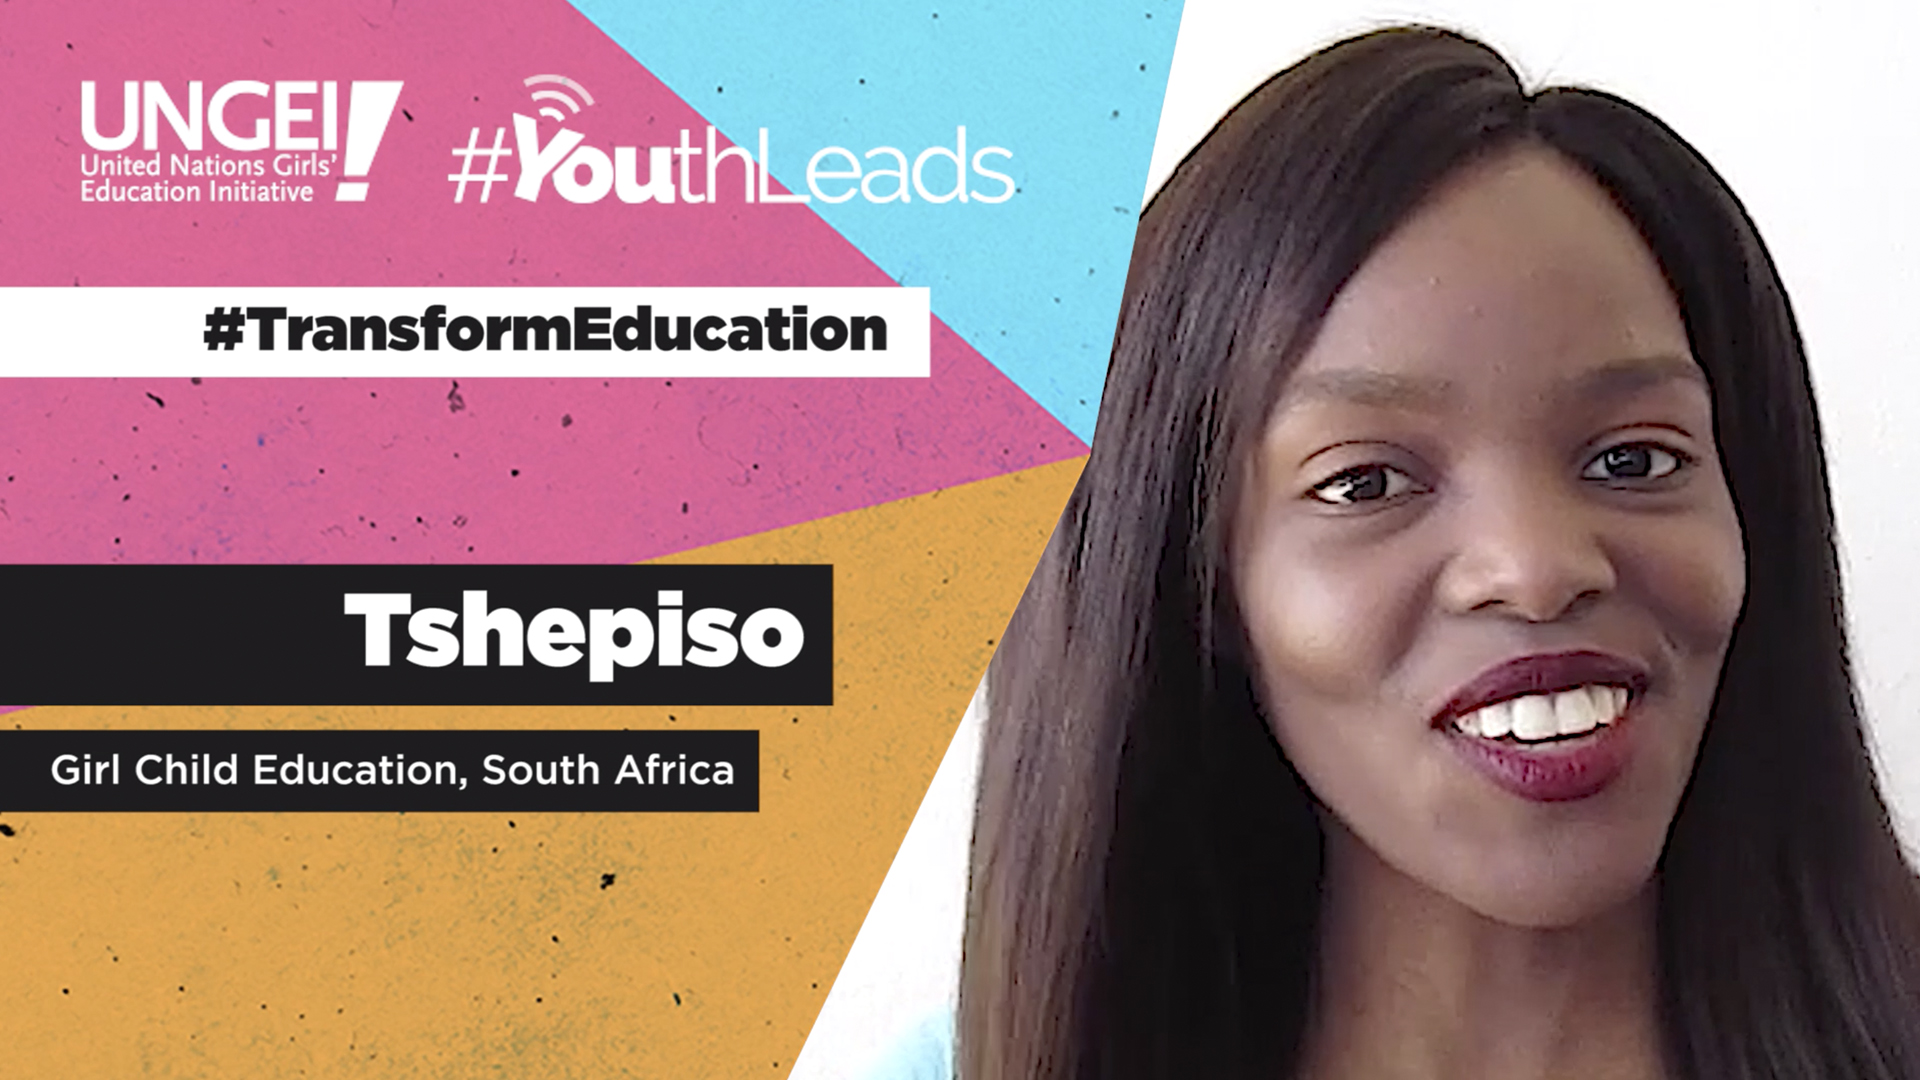 Tshepiso, Girl Child Education, South Africa